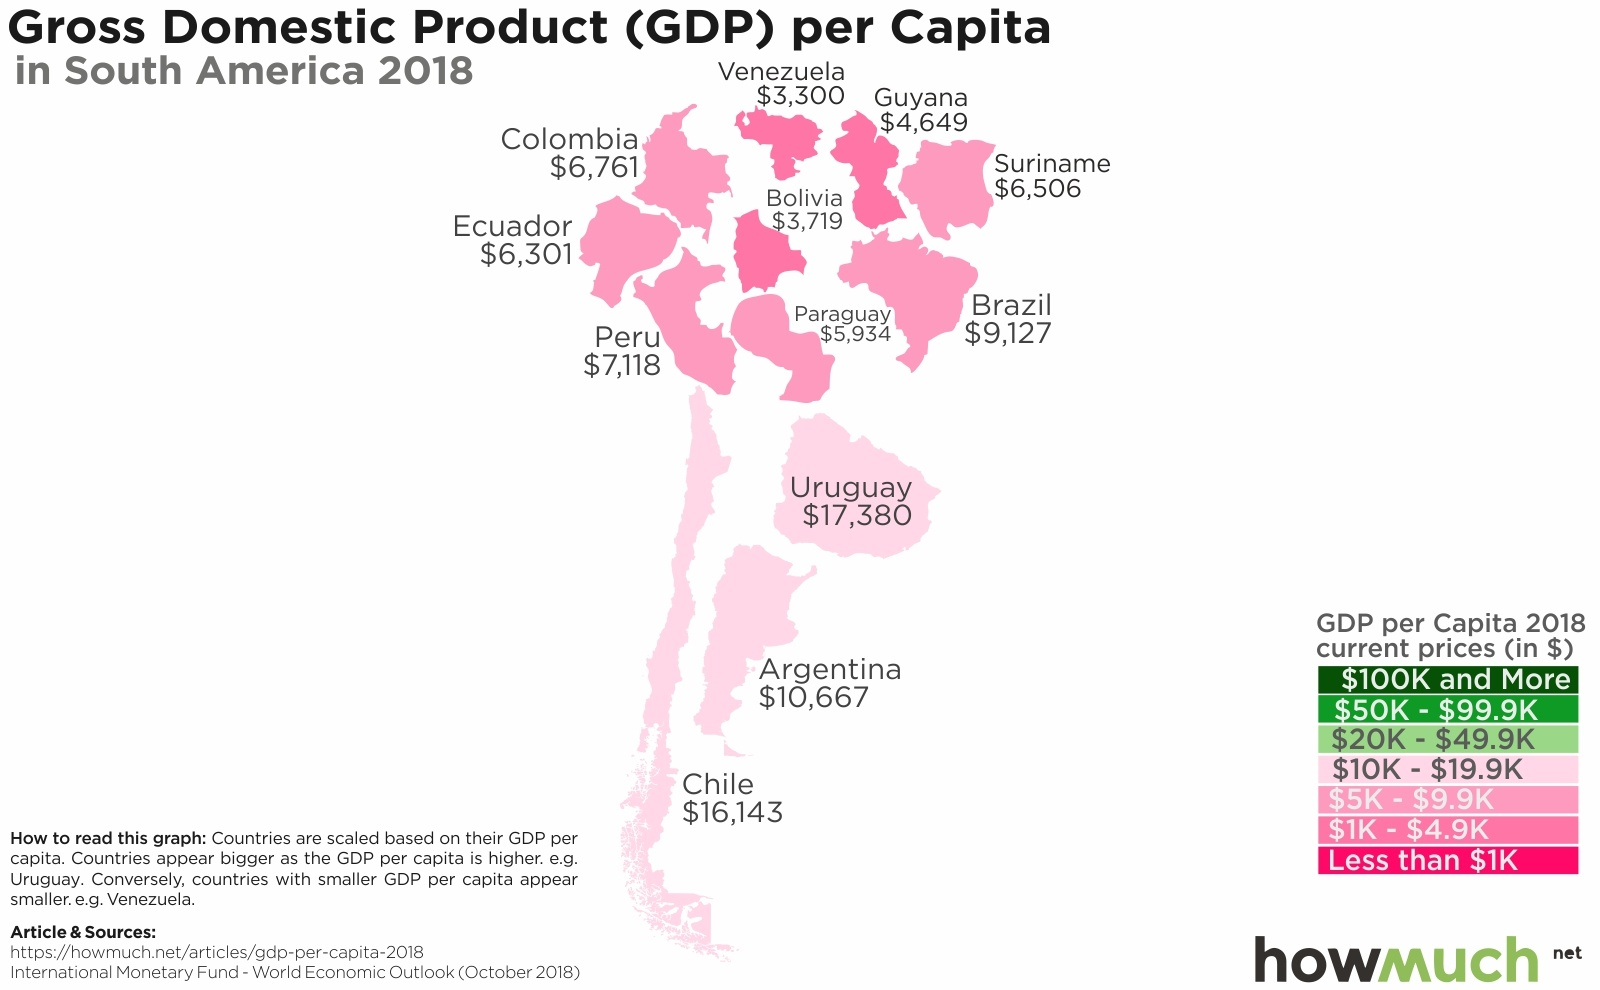 GDP per Capita in South America